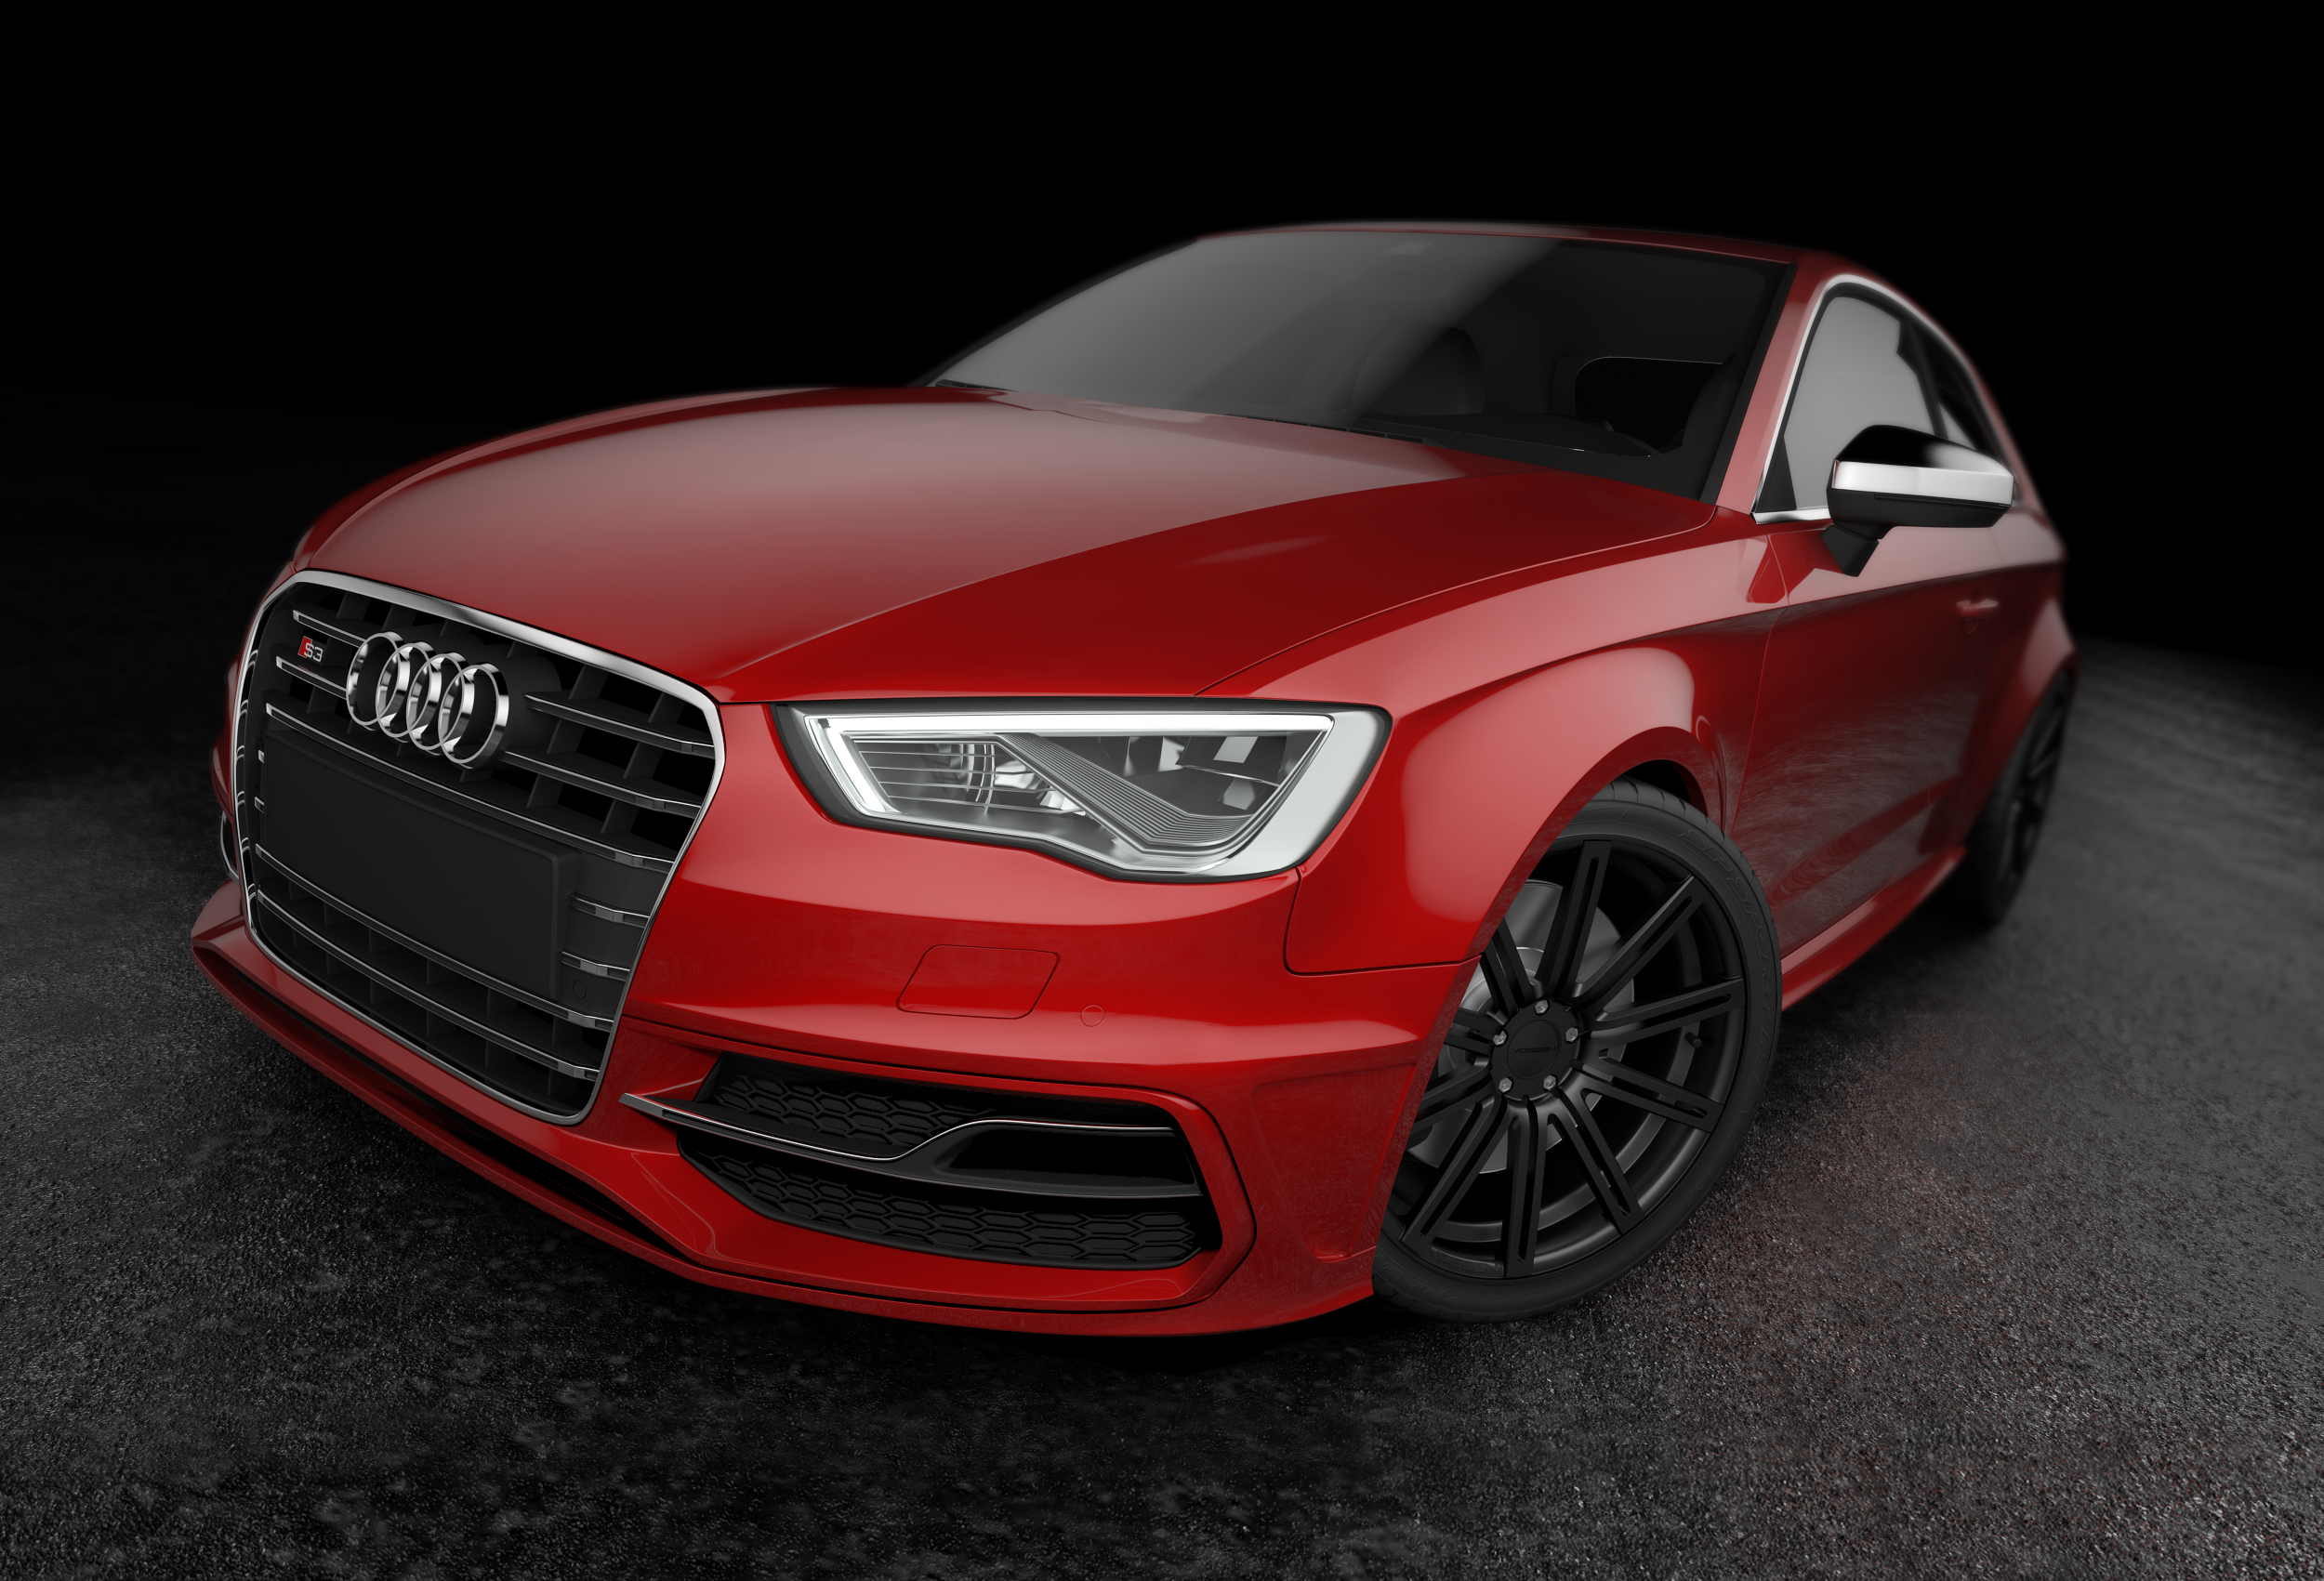 Dripmoon-modelisation-car-design-produits-illustrations-3D-Audi-s3